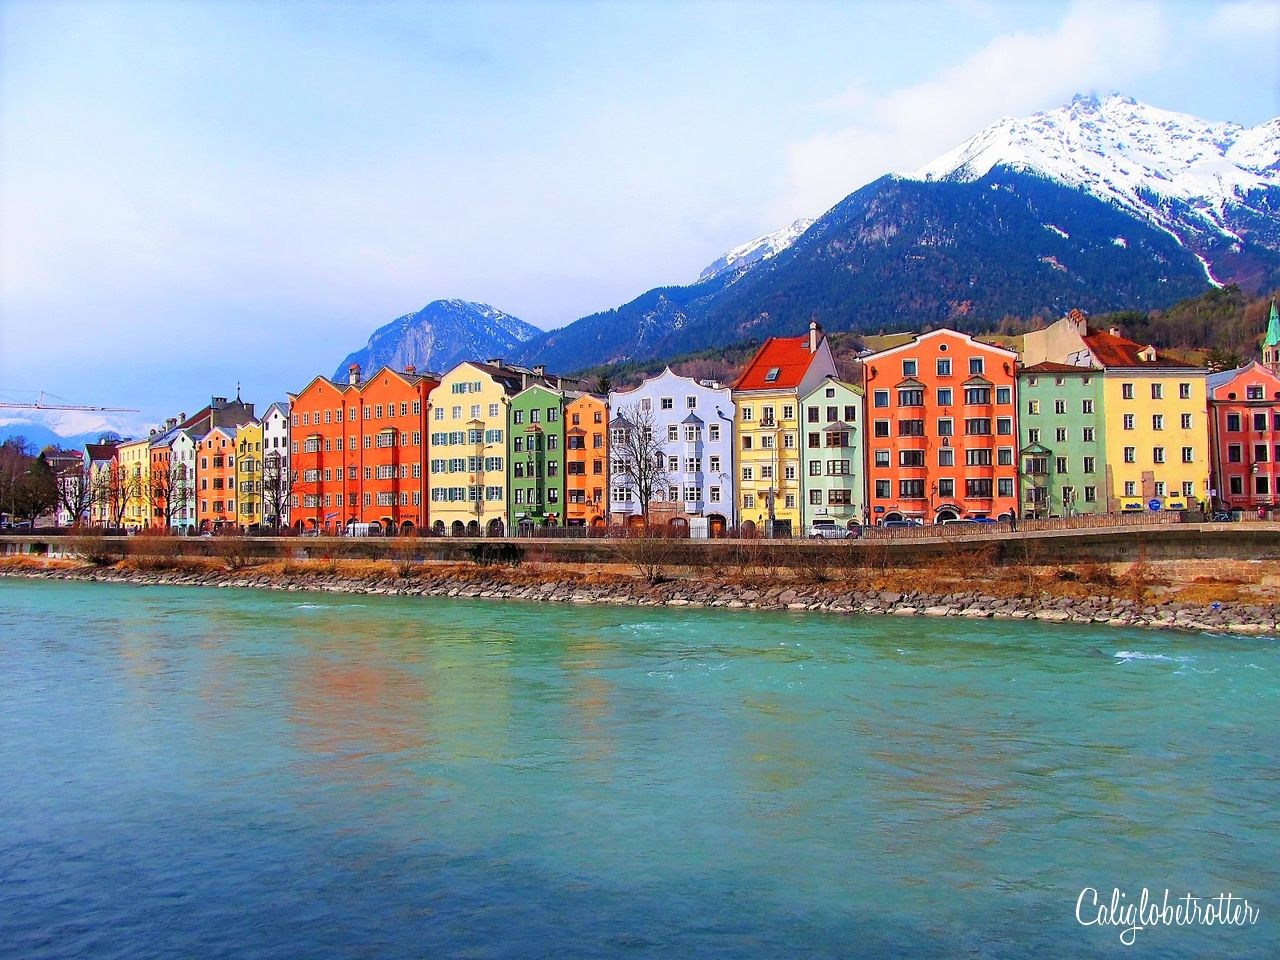 Innsbruck, Austria | Stupid Pretty Towns in Europe | Best European Villages to Visit | Small Towns in Europe | Picturesque European Town | Best Towns to Visit in Austria | Pretty Austrian Towns | Fairy Tale Towns in Europe | European Fairy Tale Villages | Best Old Towns in Europe | #Innsbruck #Austria #Europe - California Globetrotter